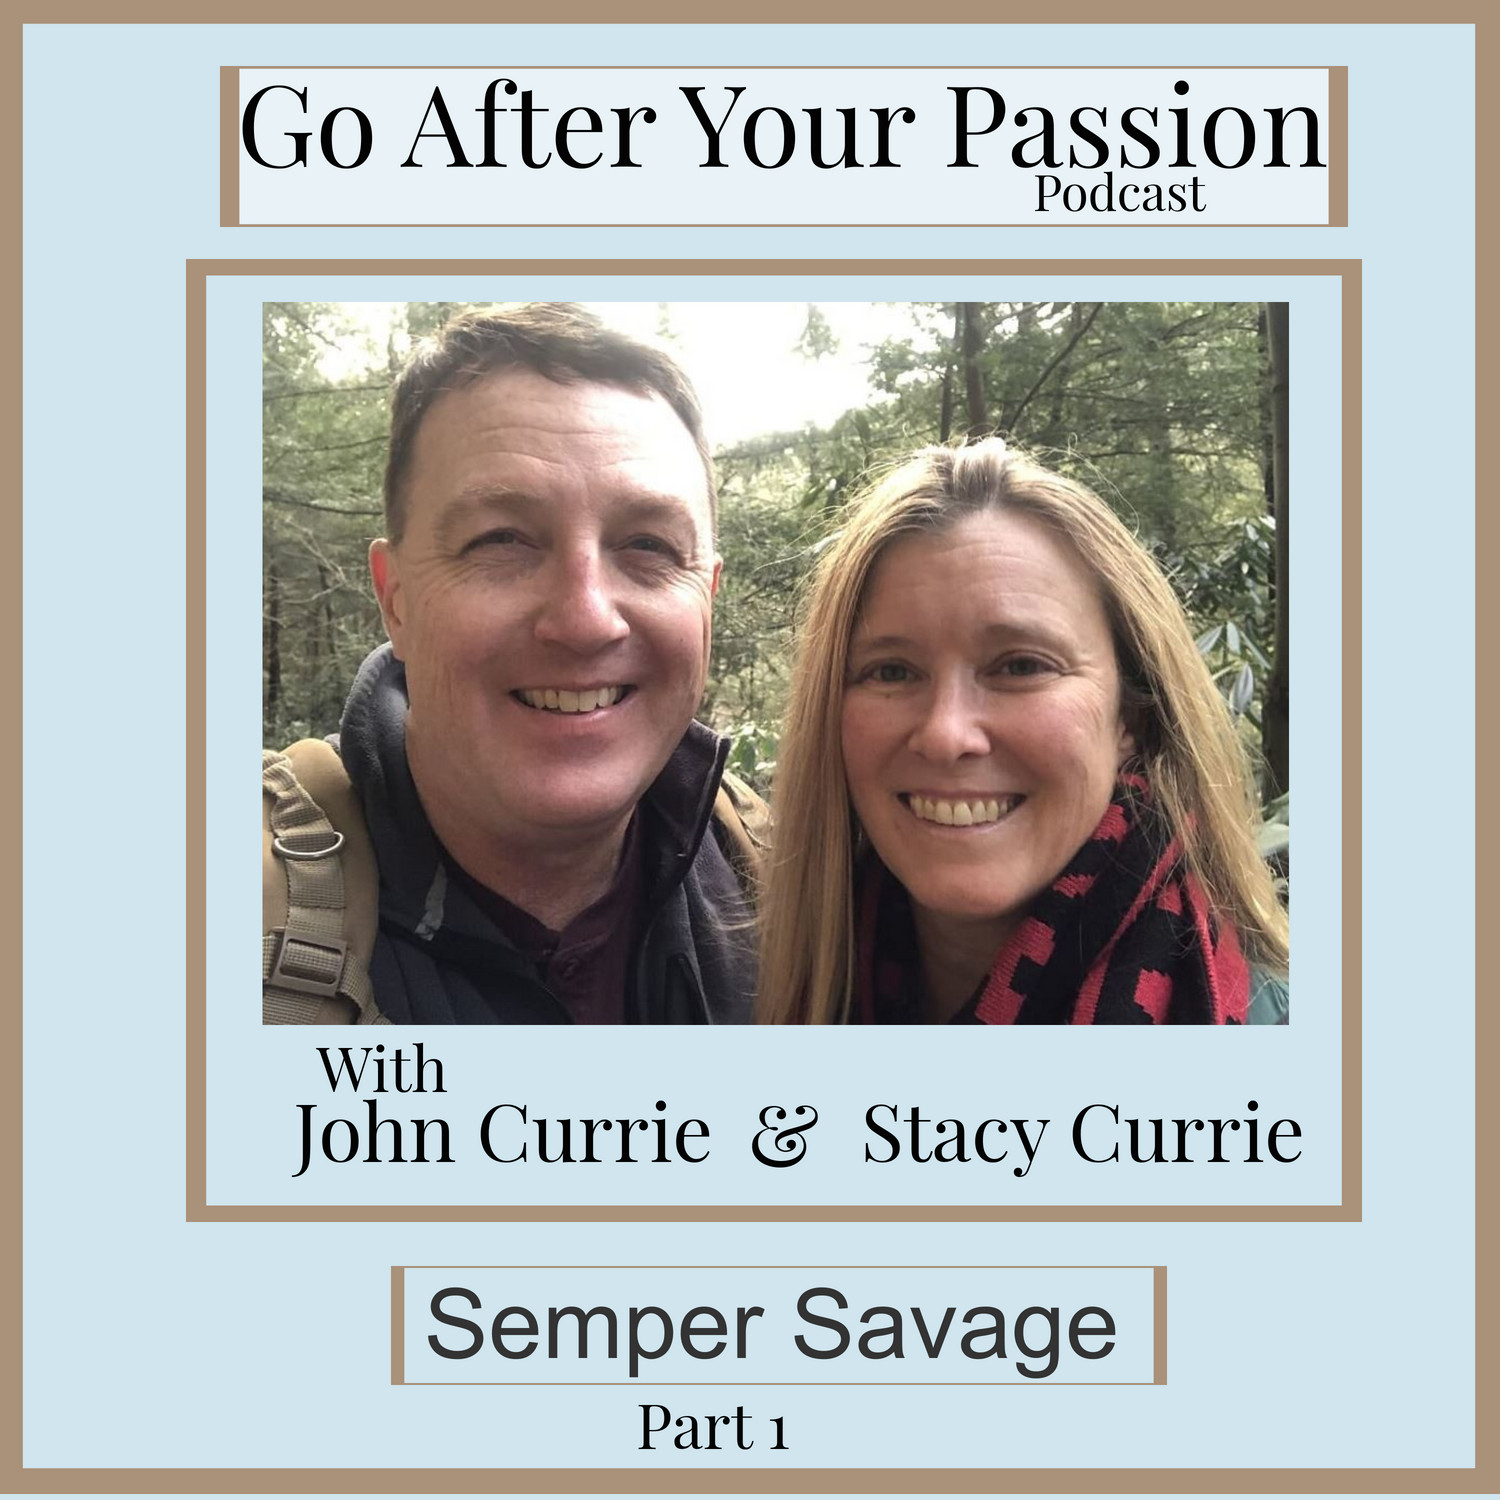 John & Stacy Currie